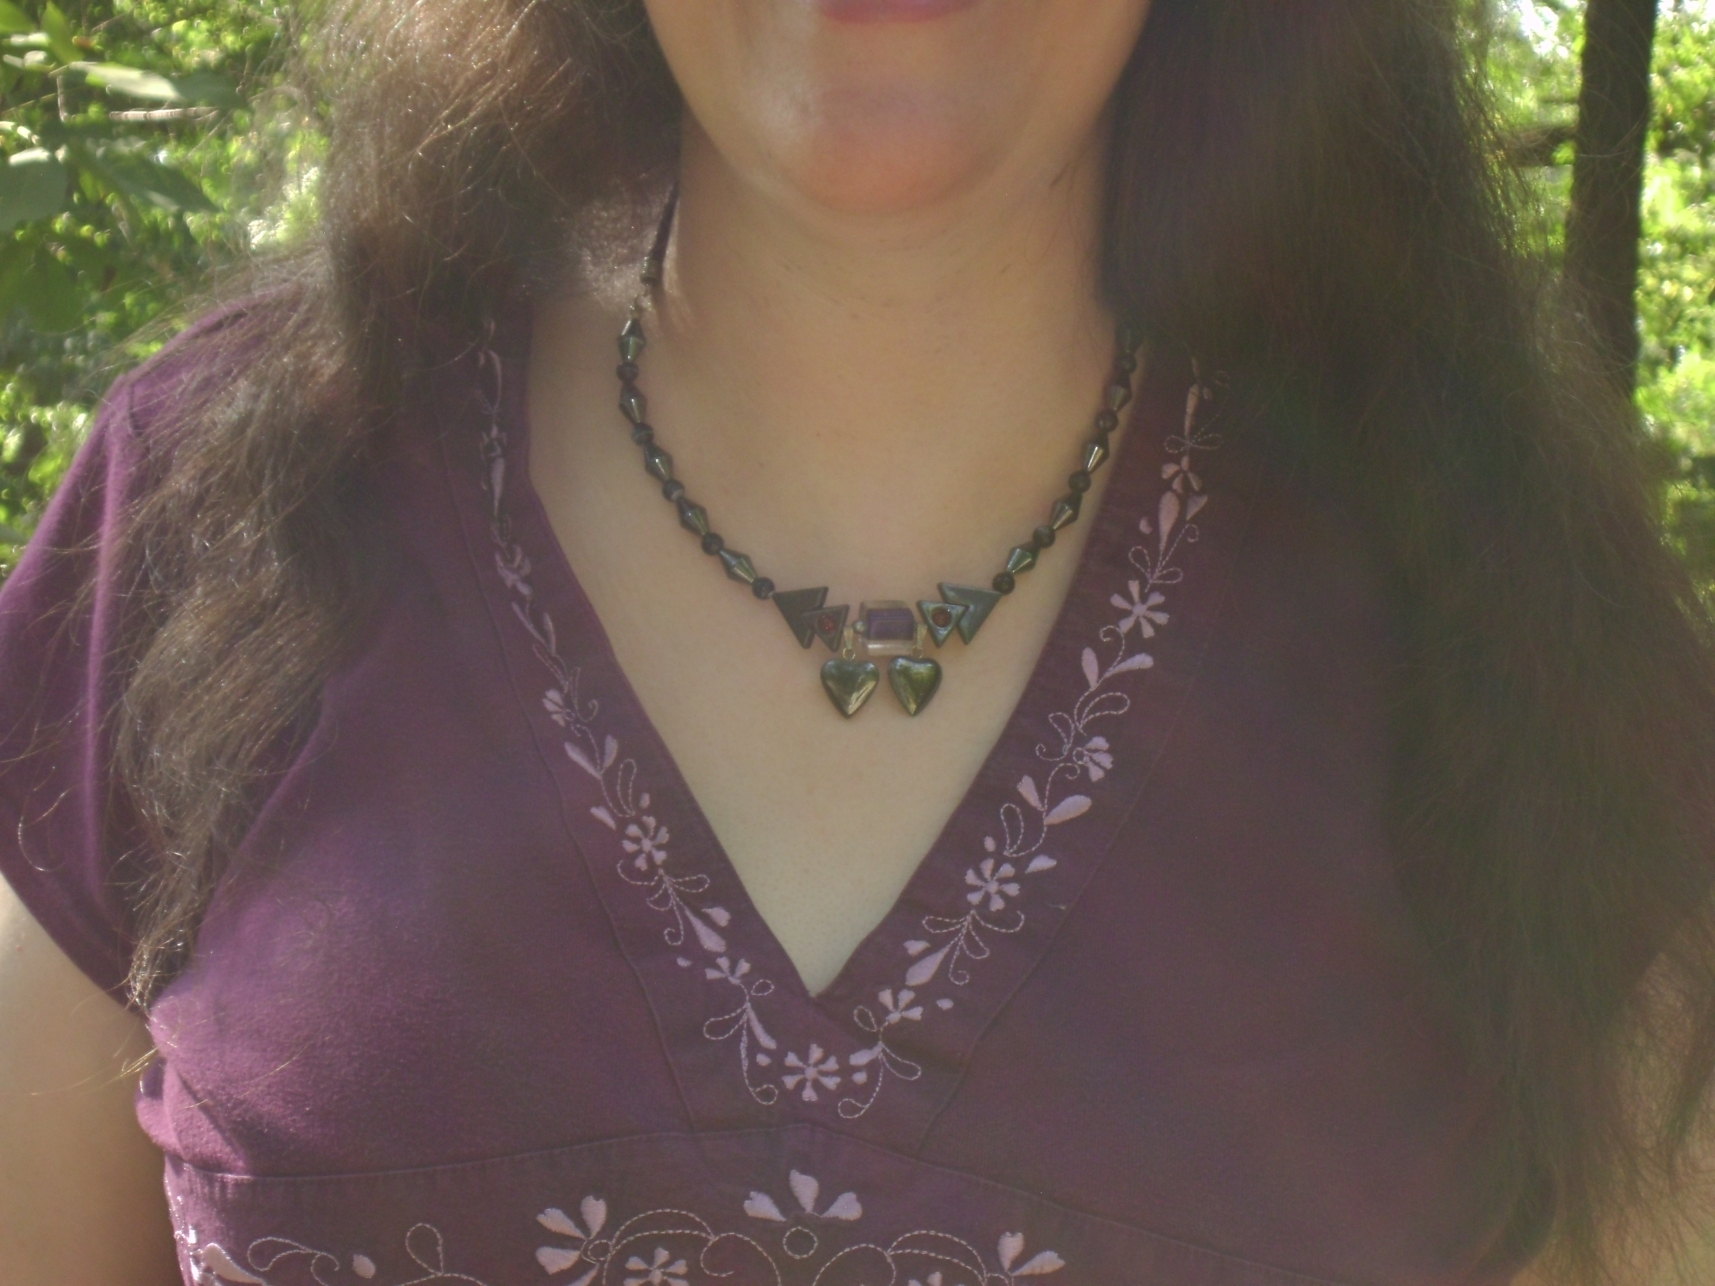 Rachel in the Hematite Heart Necklace by Windthin